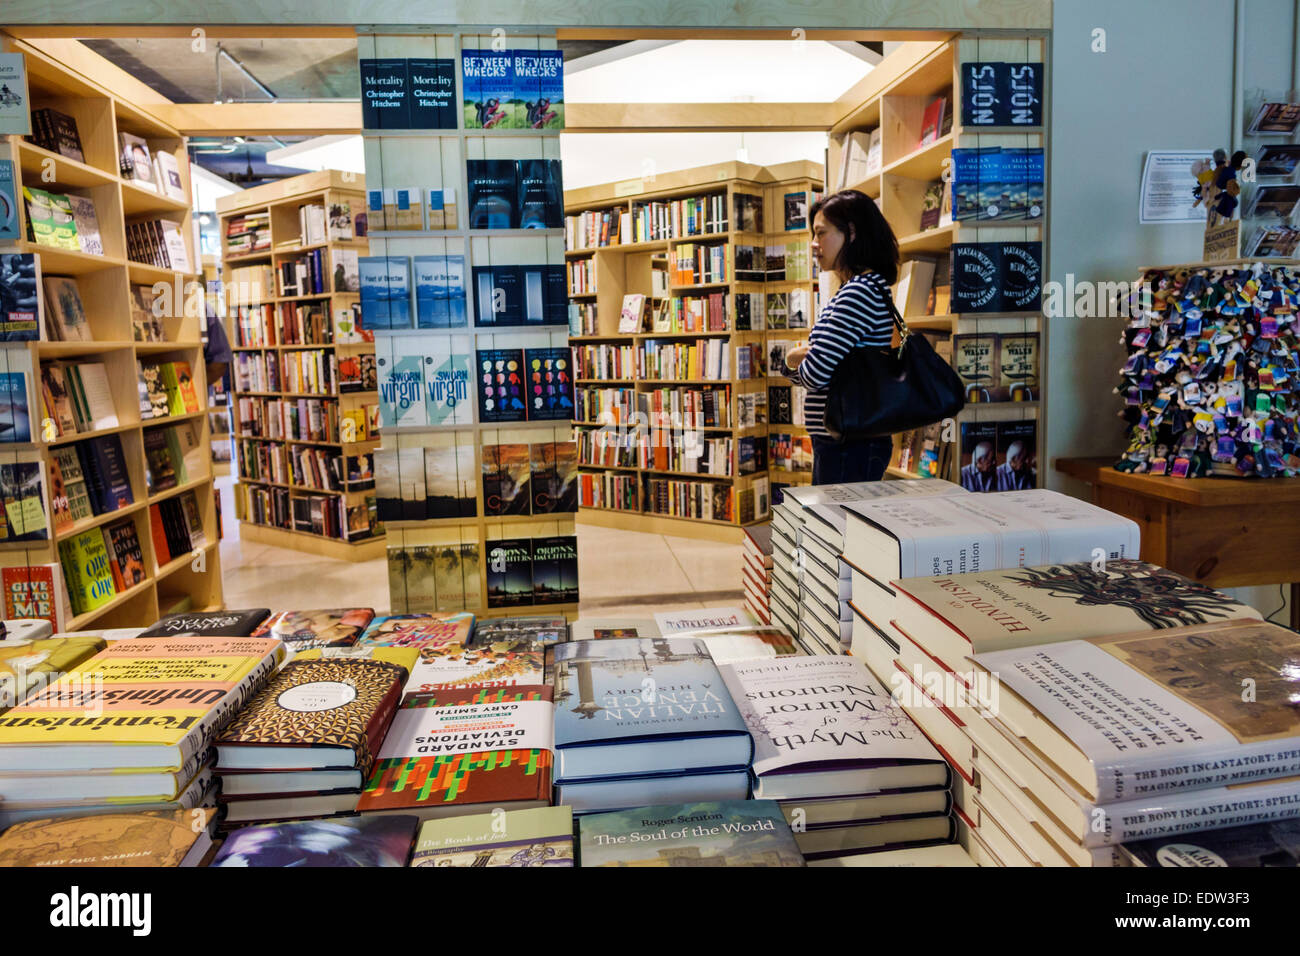 Chicago Illinois Hyde Park campus University of Chicago The Seminary Co-op Bookstores college bookstore inside books - Stock Image